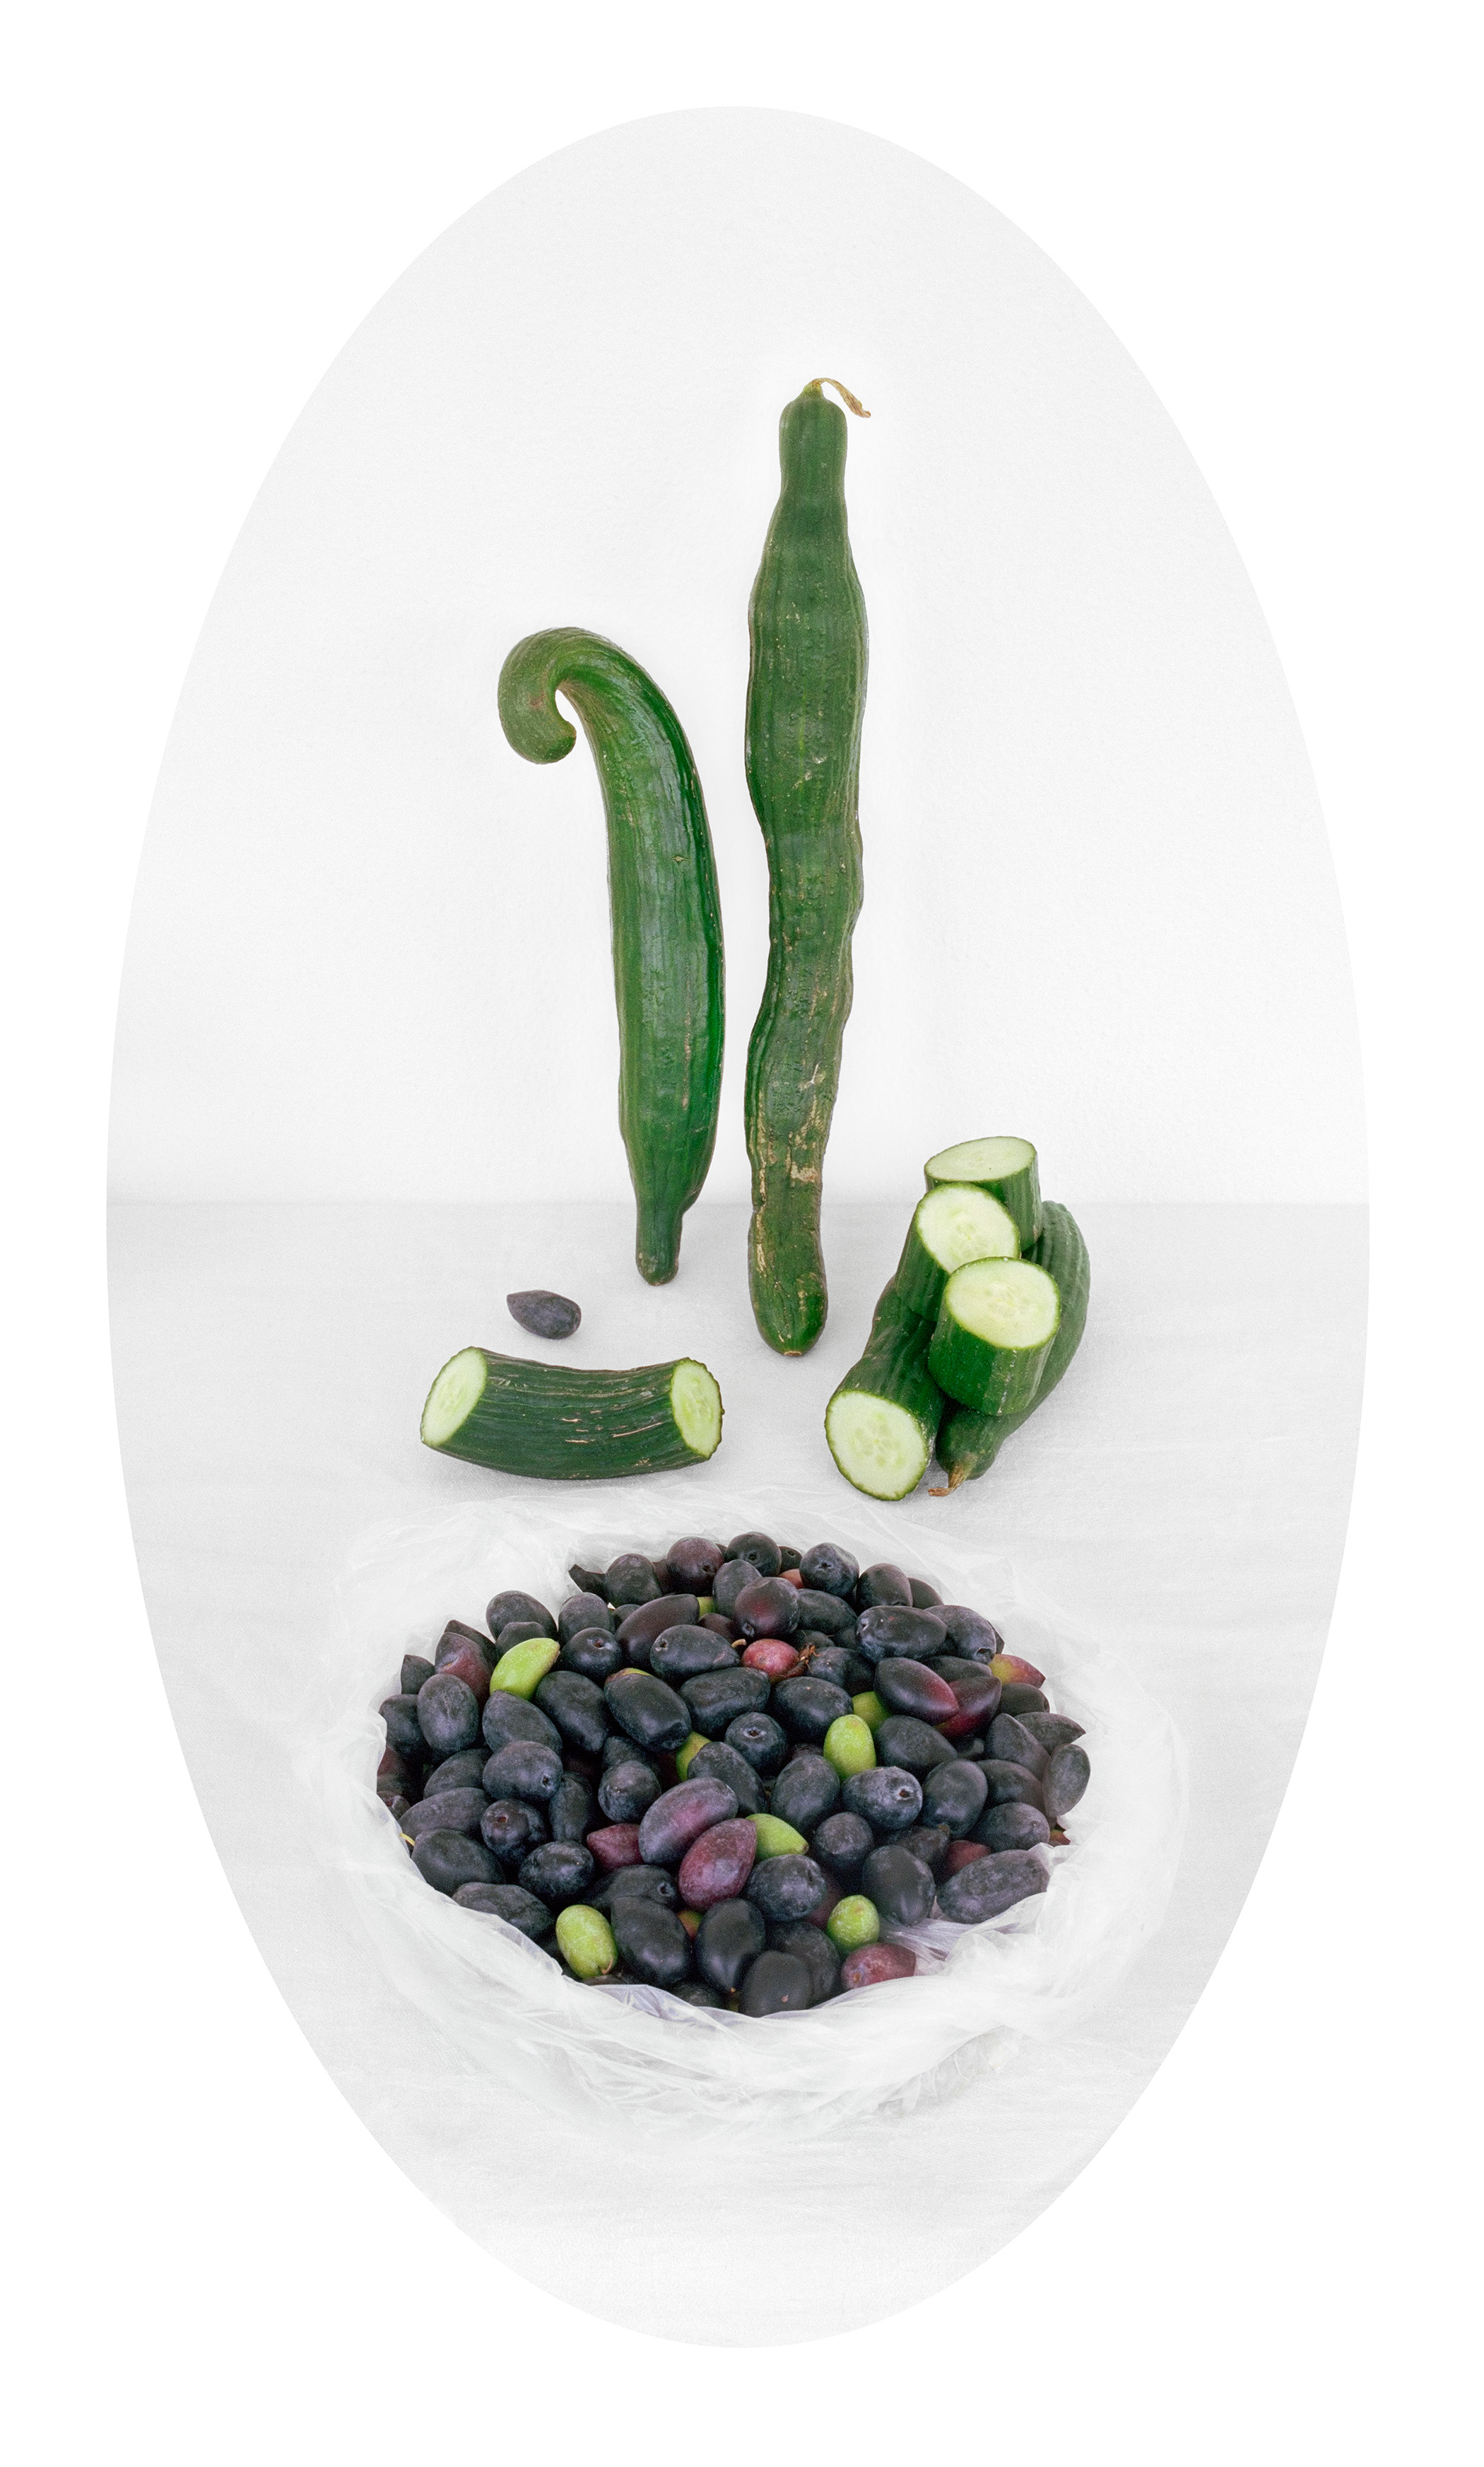 Cucumber & Black Olives